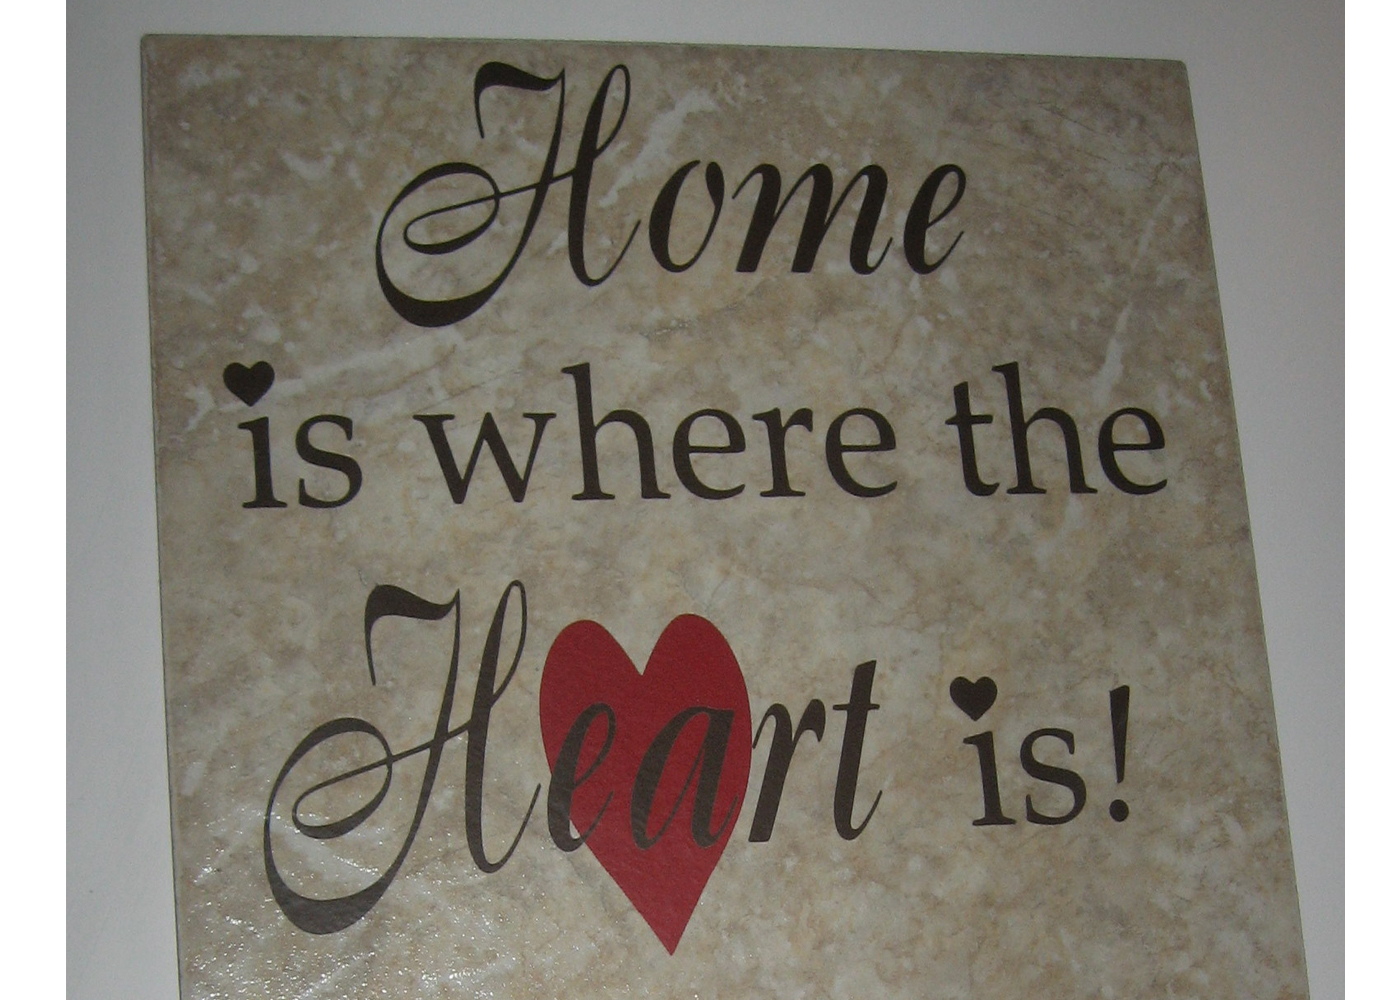 home-is-where-the-heart-is-on-tile-with-heart.jpg